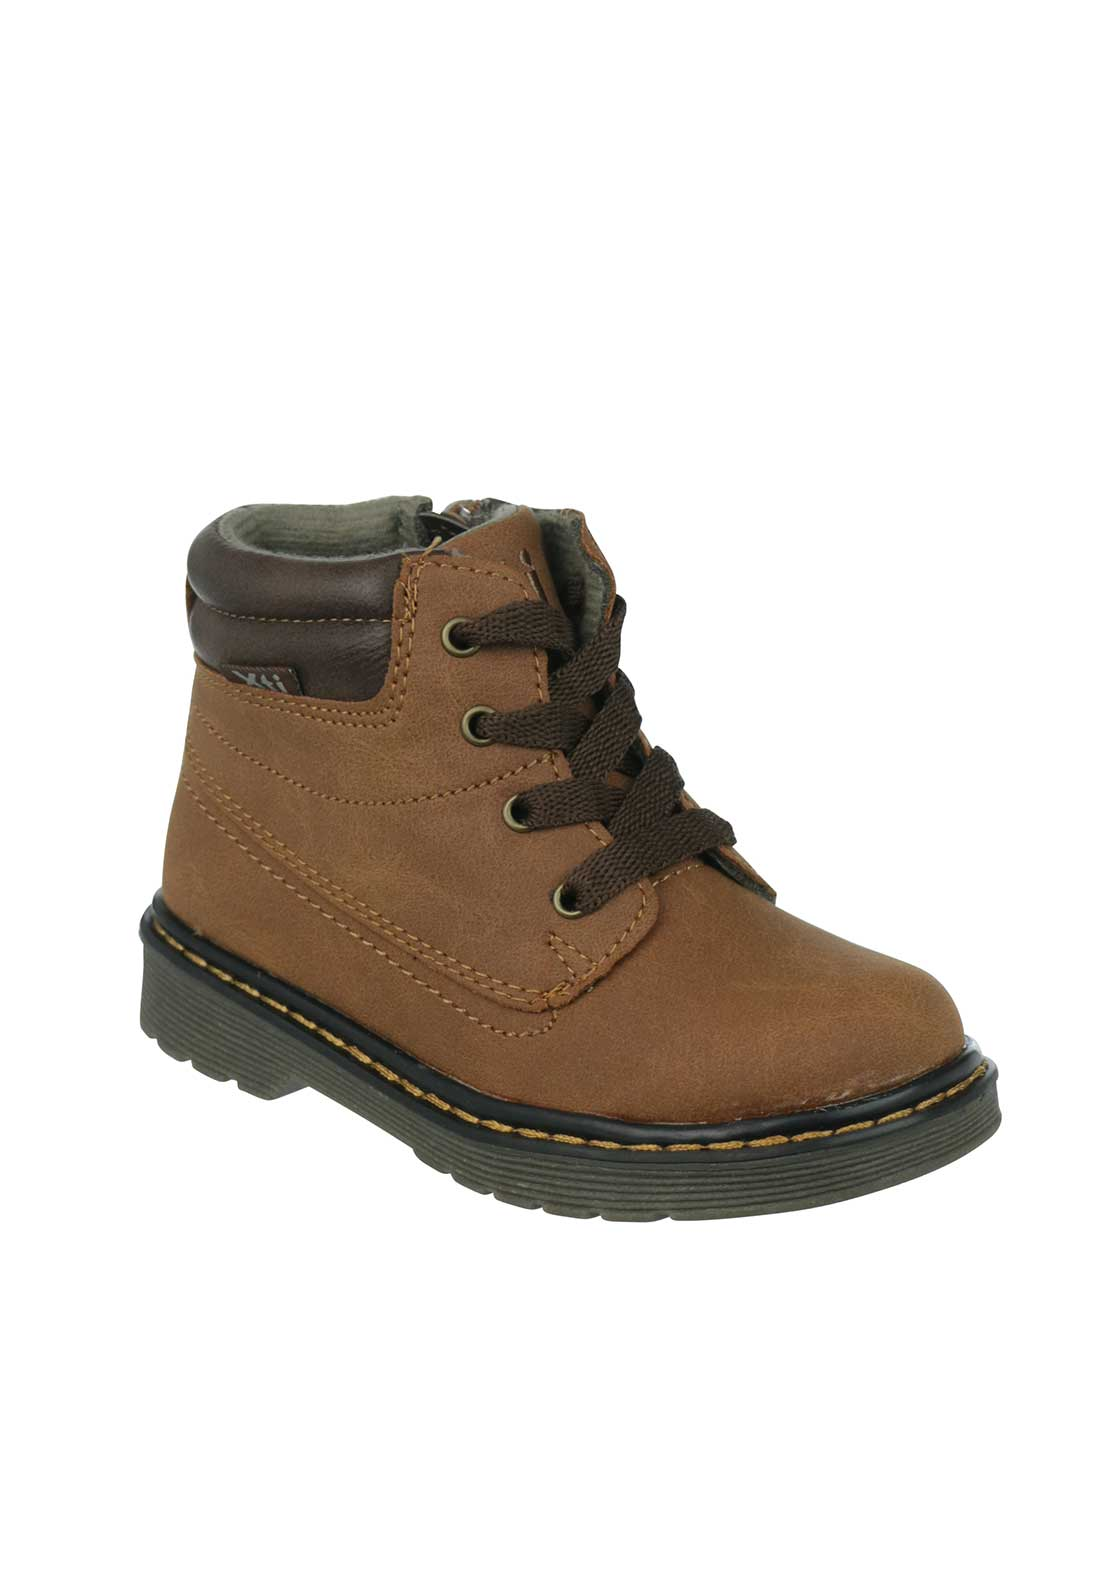 Xti Boys Faux Leather Ankle Boots, Brown